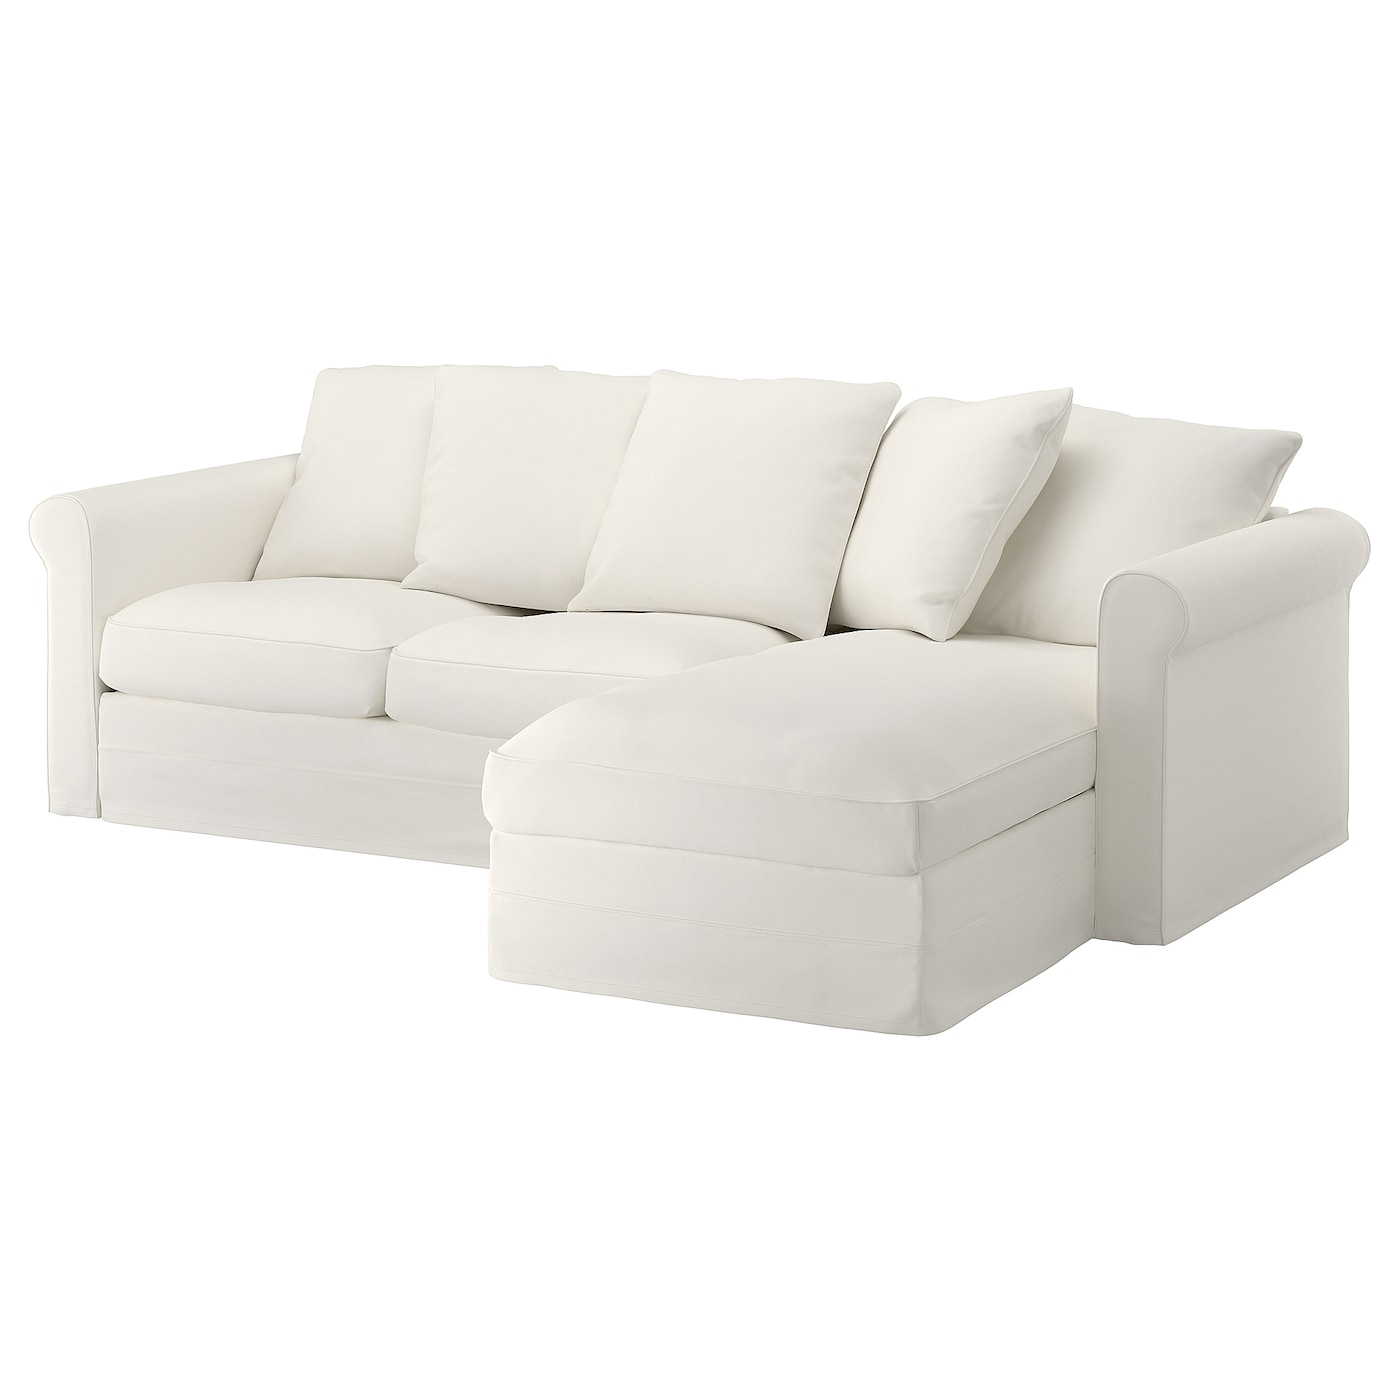 Gr nlid 3 seat sofa with chaise longue inseros white ikea - Sofa dormitorio ...